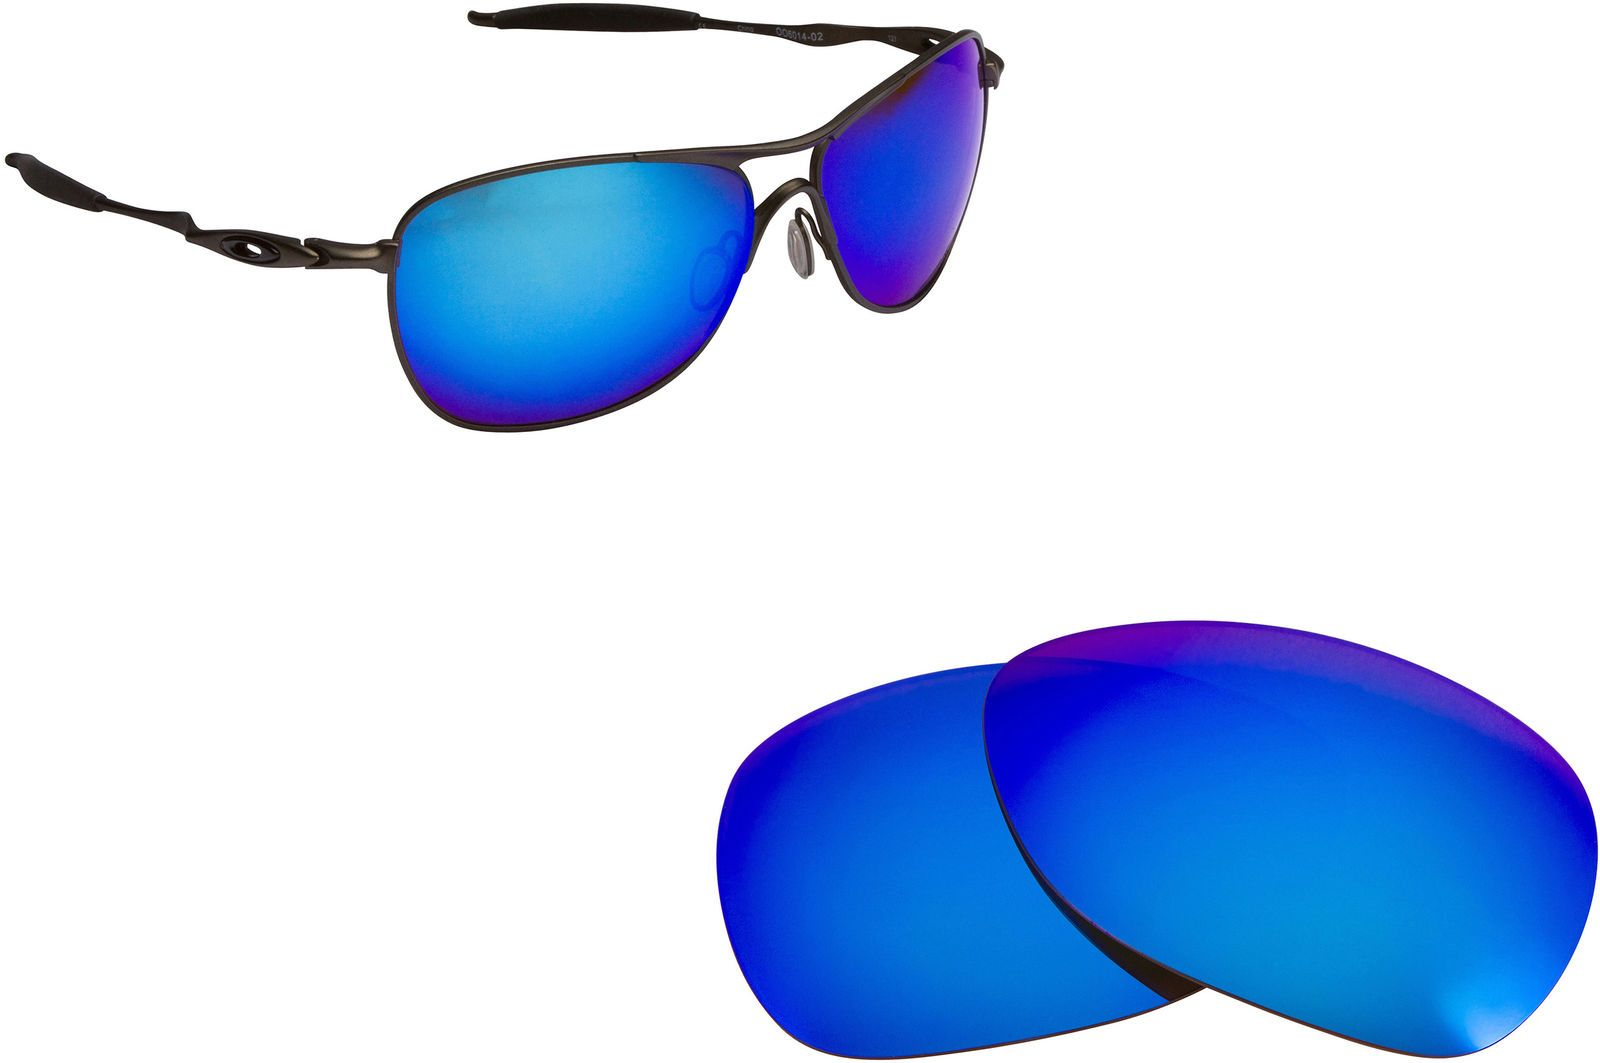 41a52343831 Best Ow Polarized Replacement Lenses For Oakley Crosshair (Oo6014) Blue  Mirror